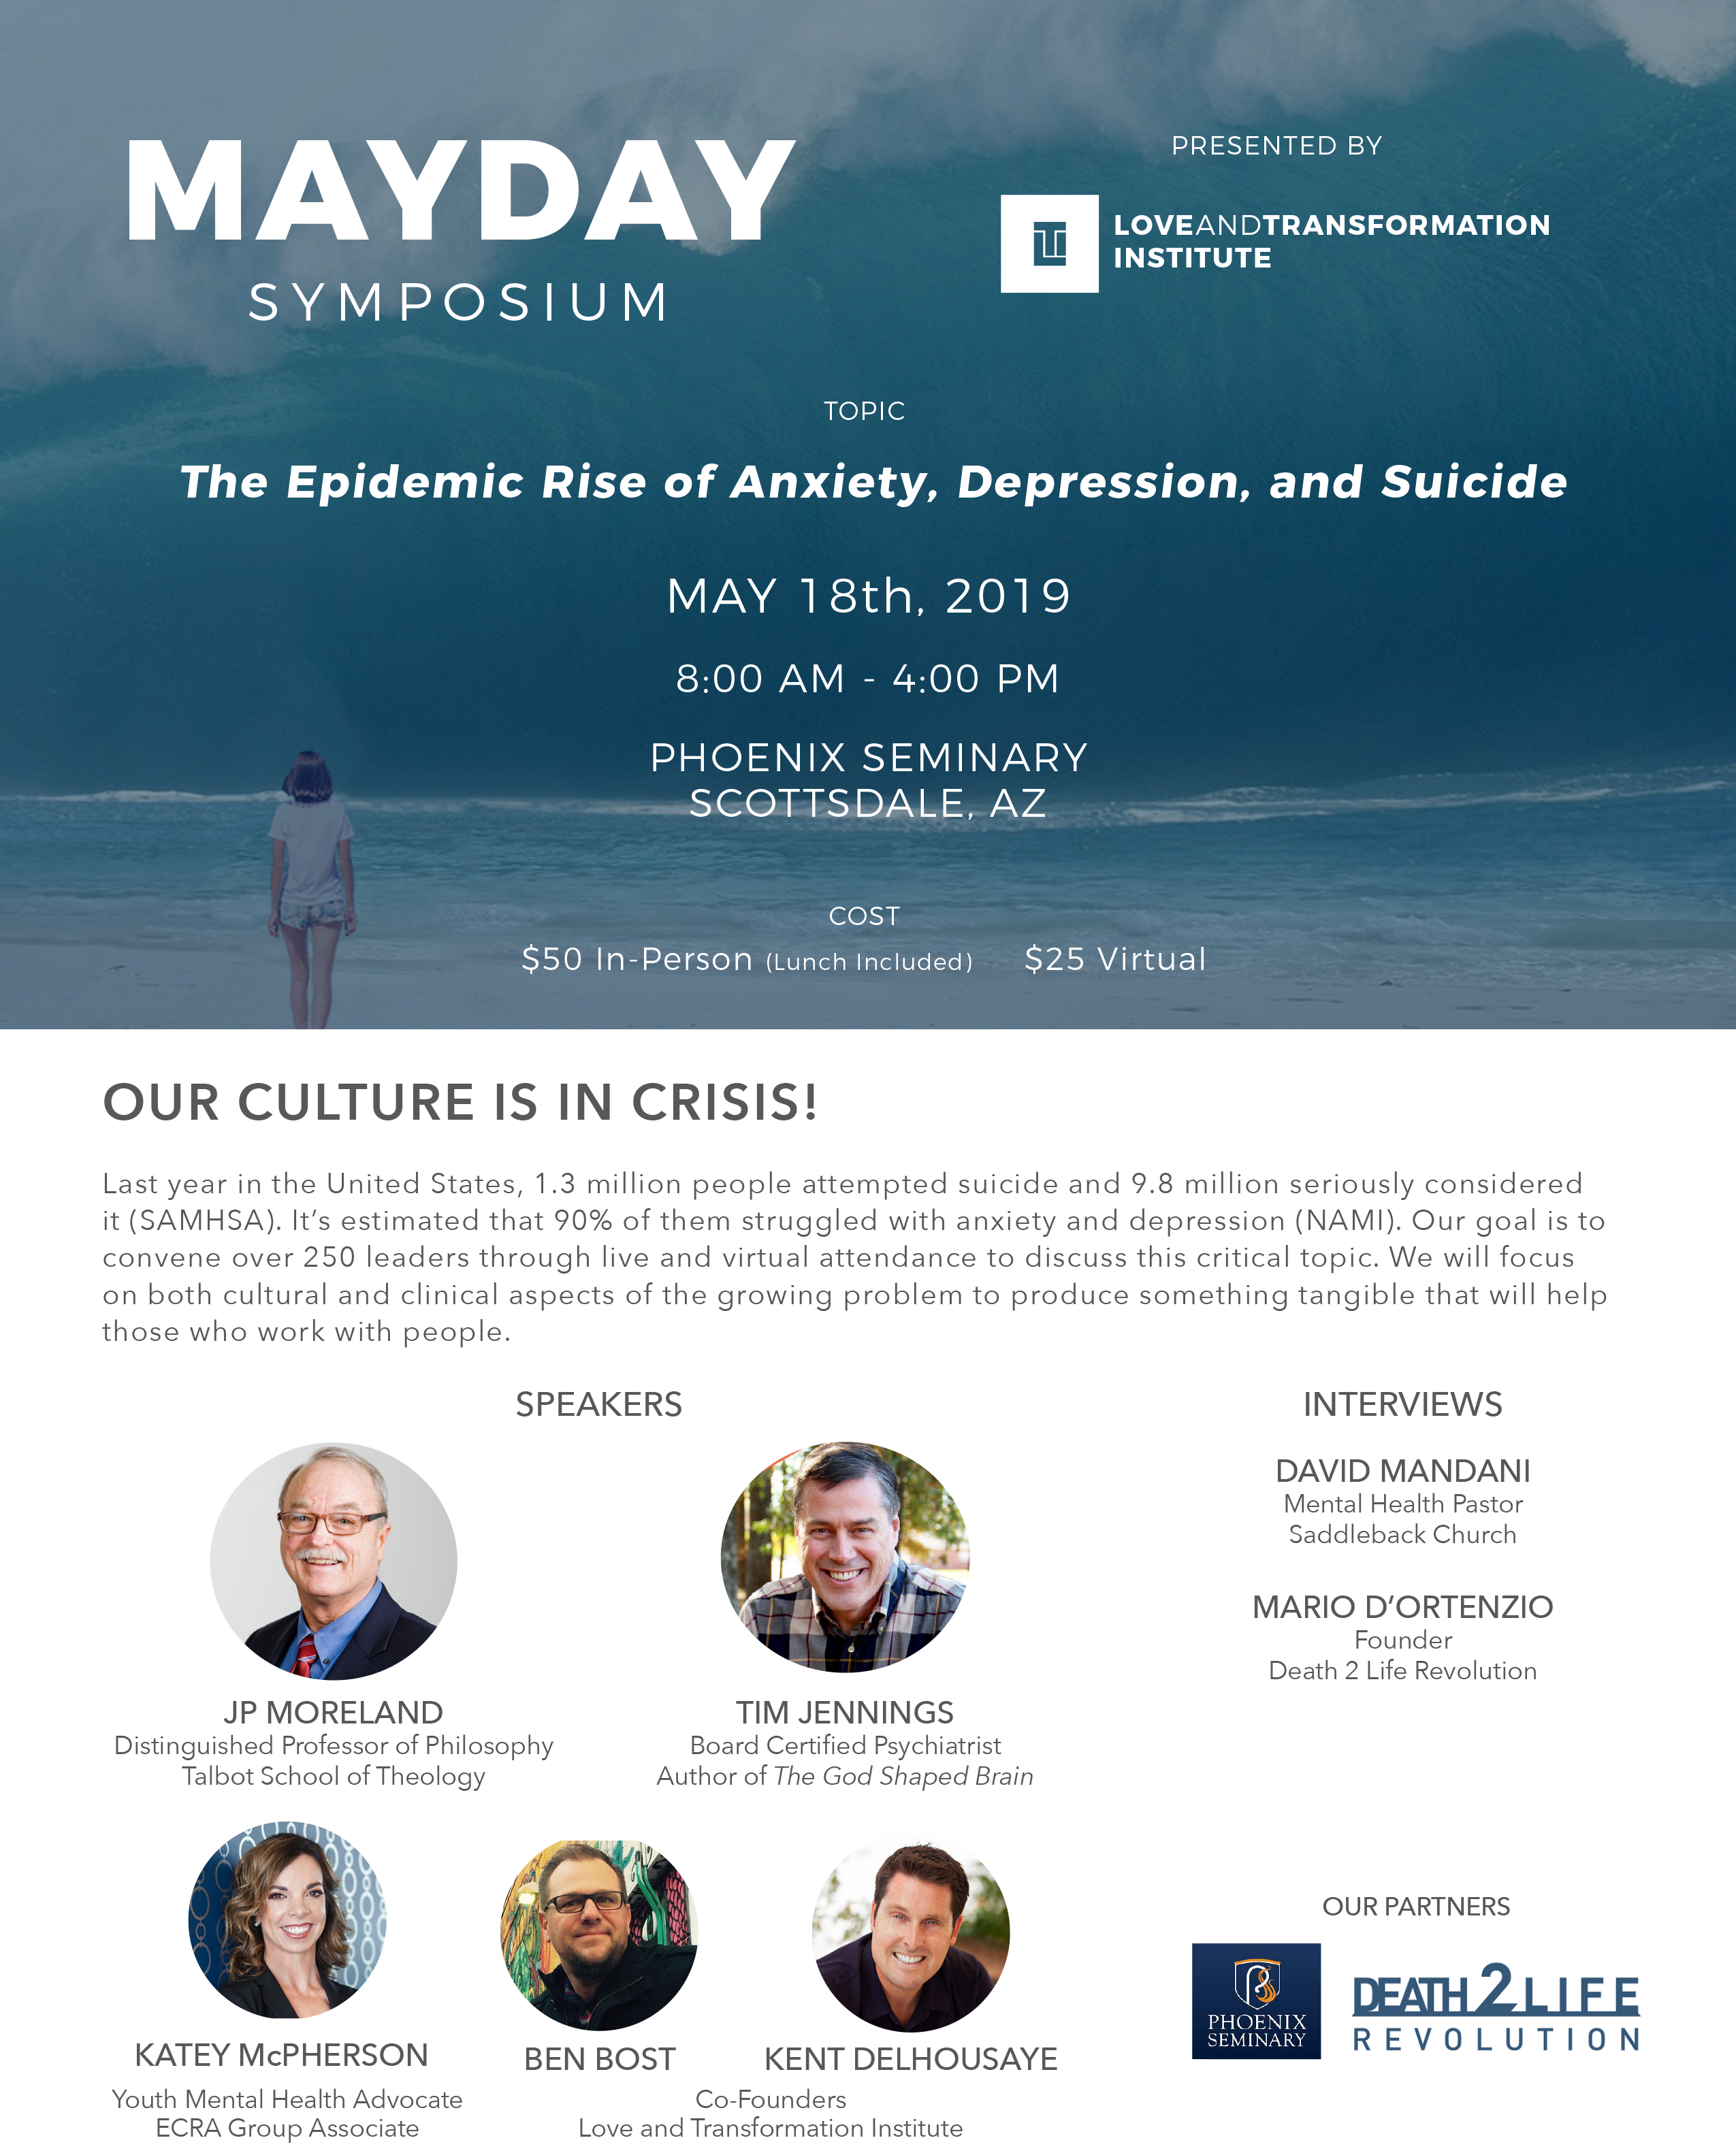 MAYDAY-Symposium-Registration2